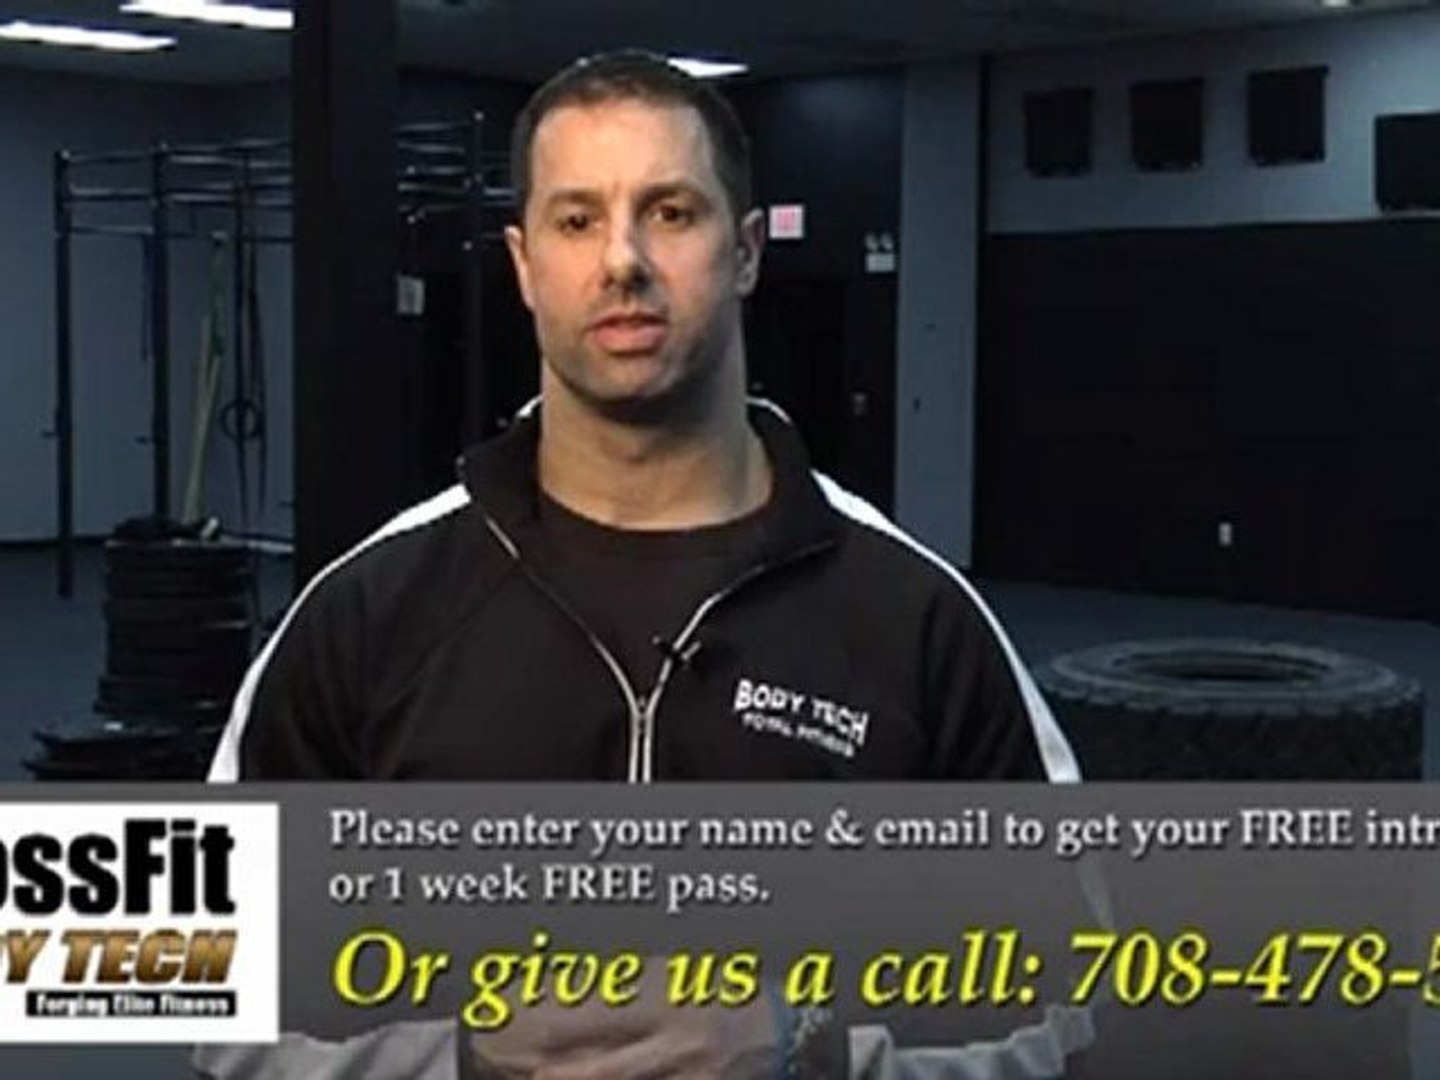 CrossFit Body Tech in Orland Park, IL l CrossFit Body Tech i